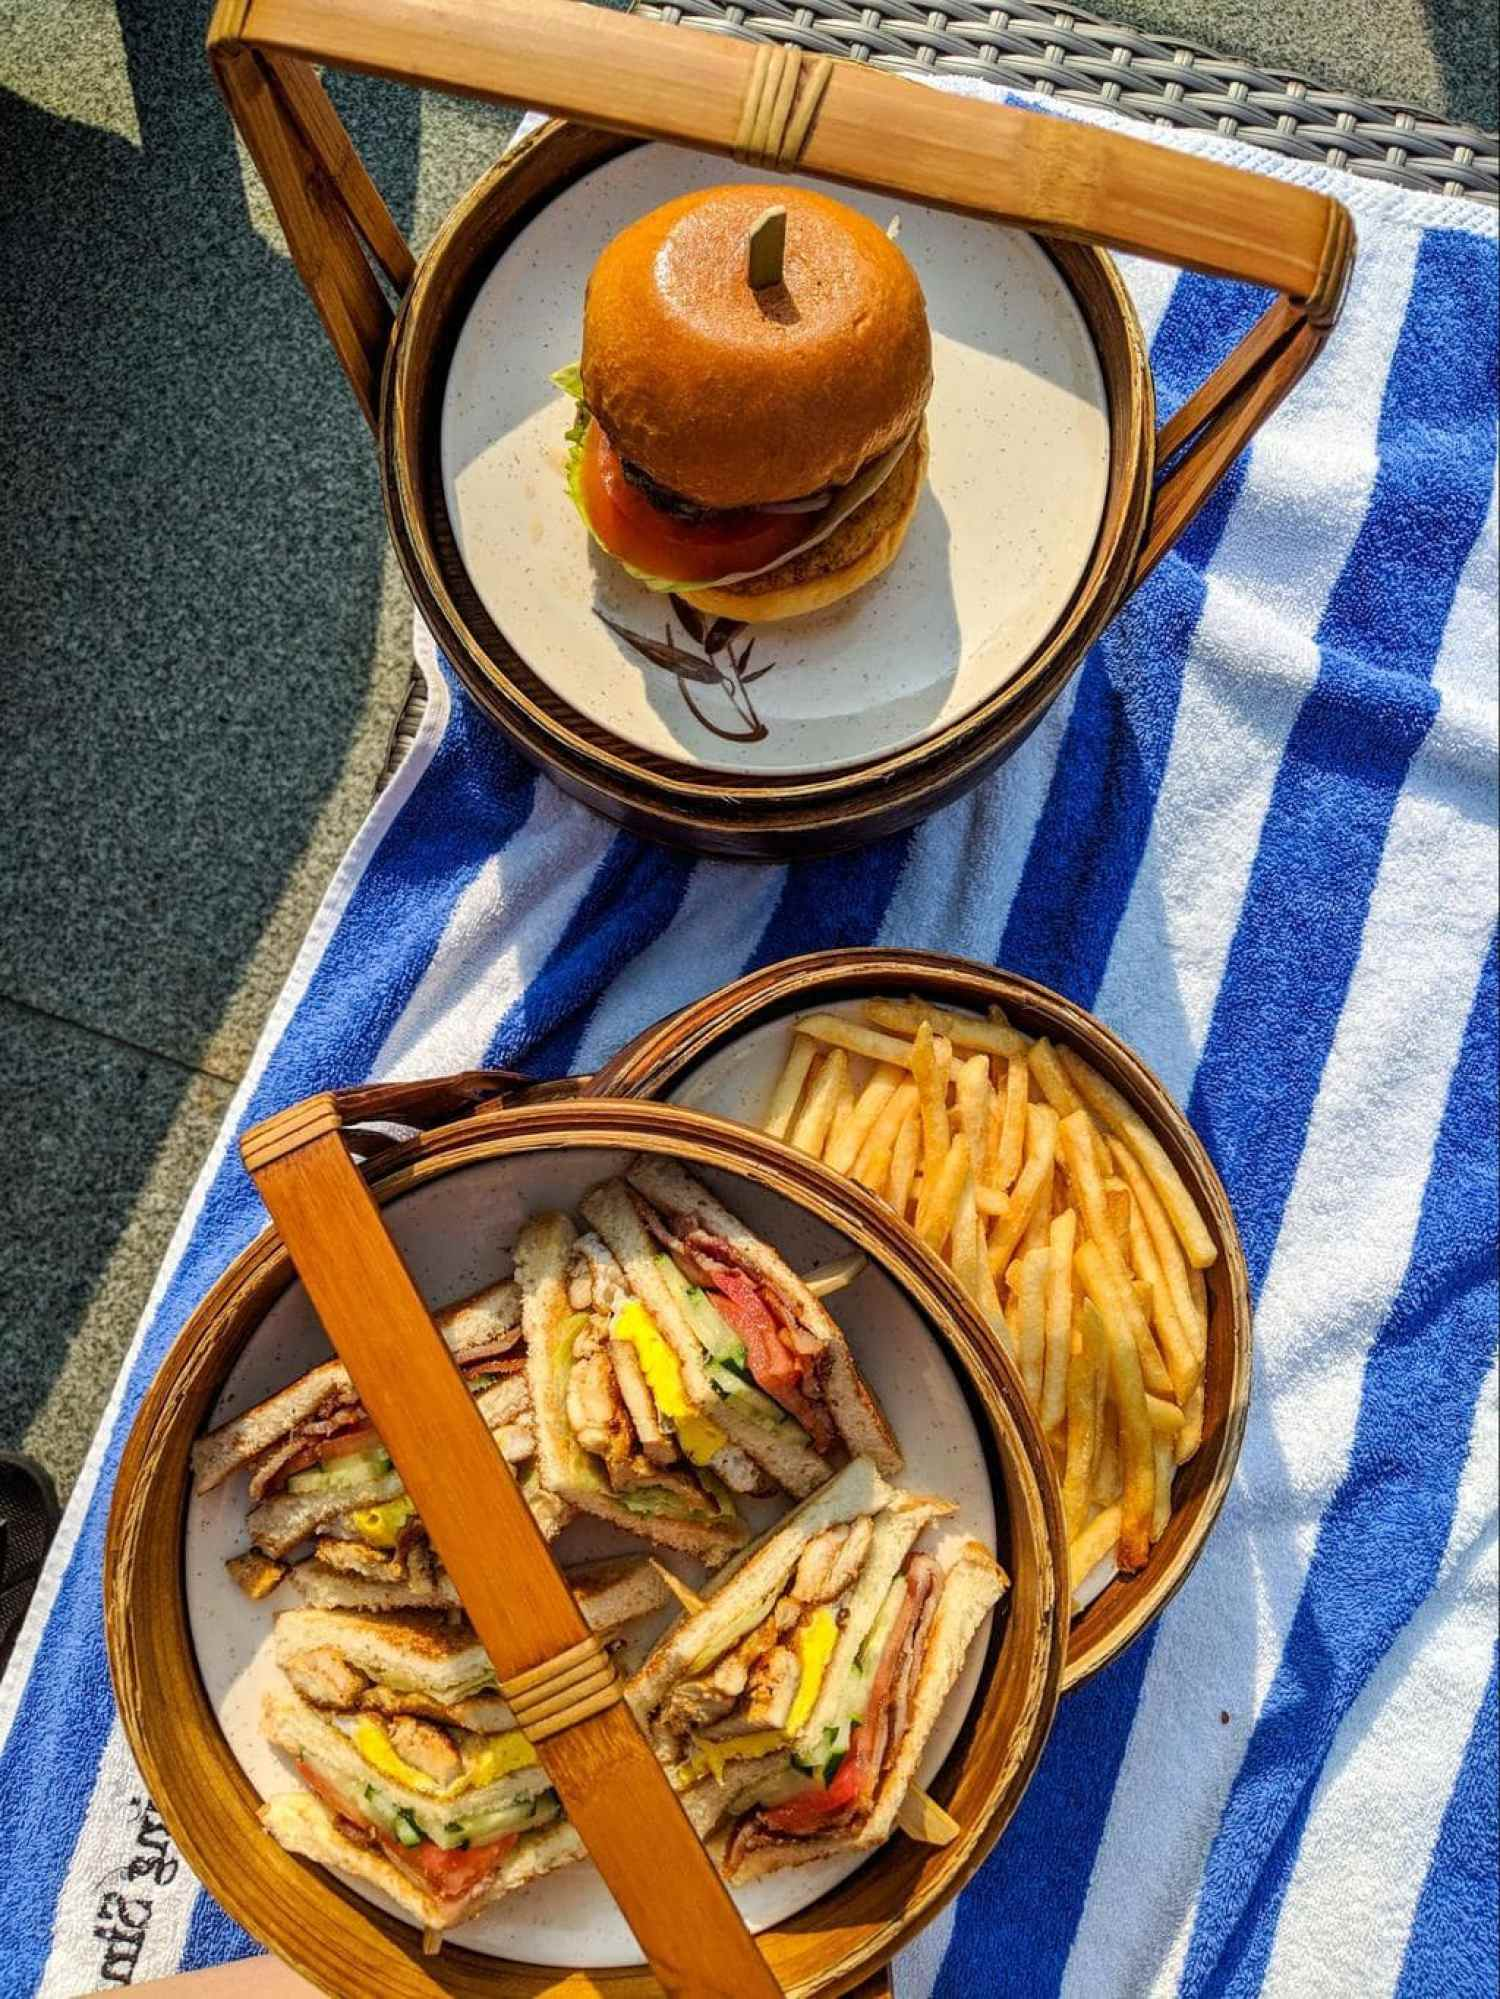 Poolside snacks at Hotel Fort Canning